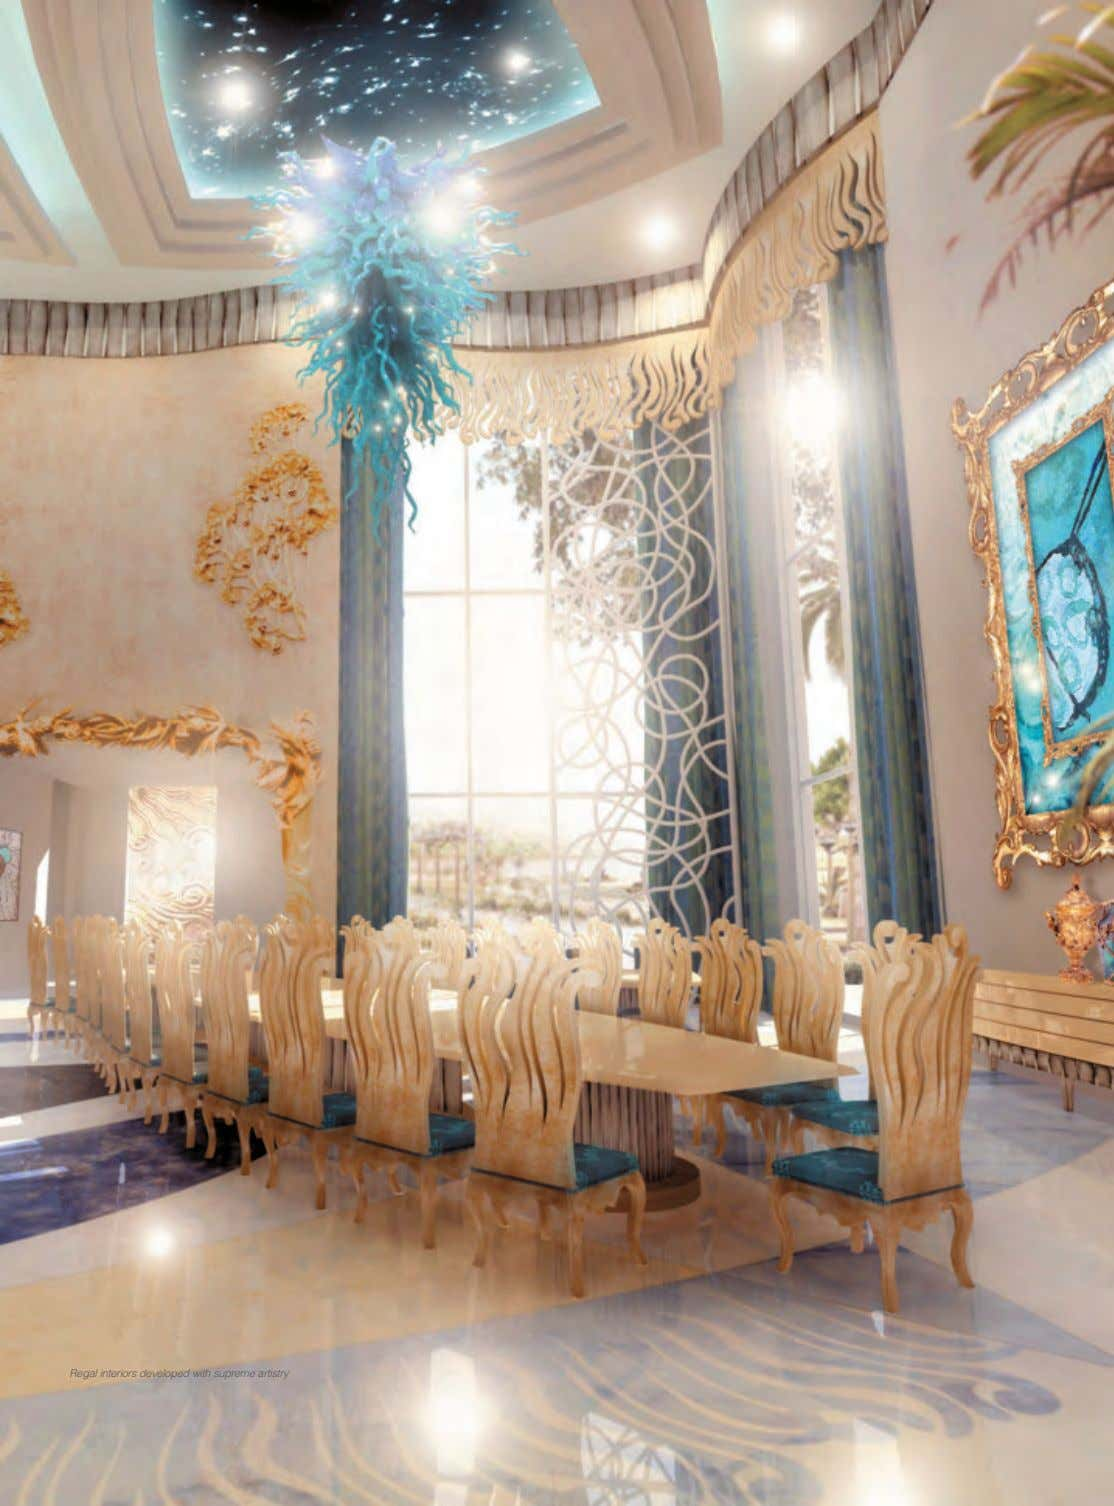 Regal interiors developed with supreme artistry